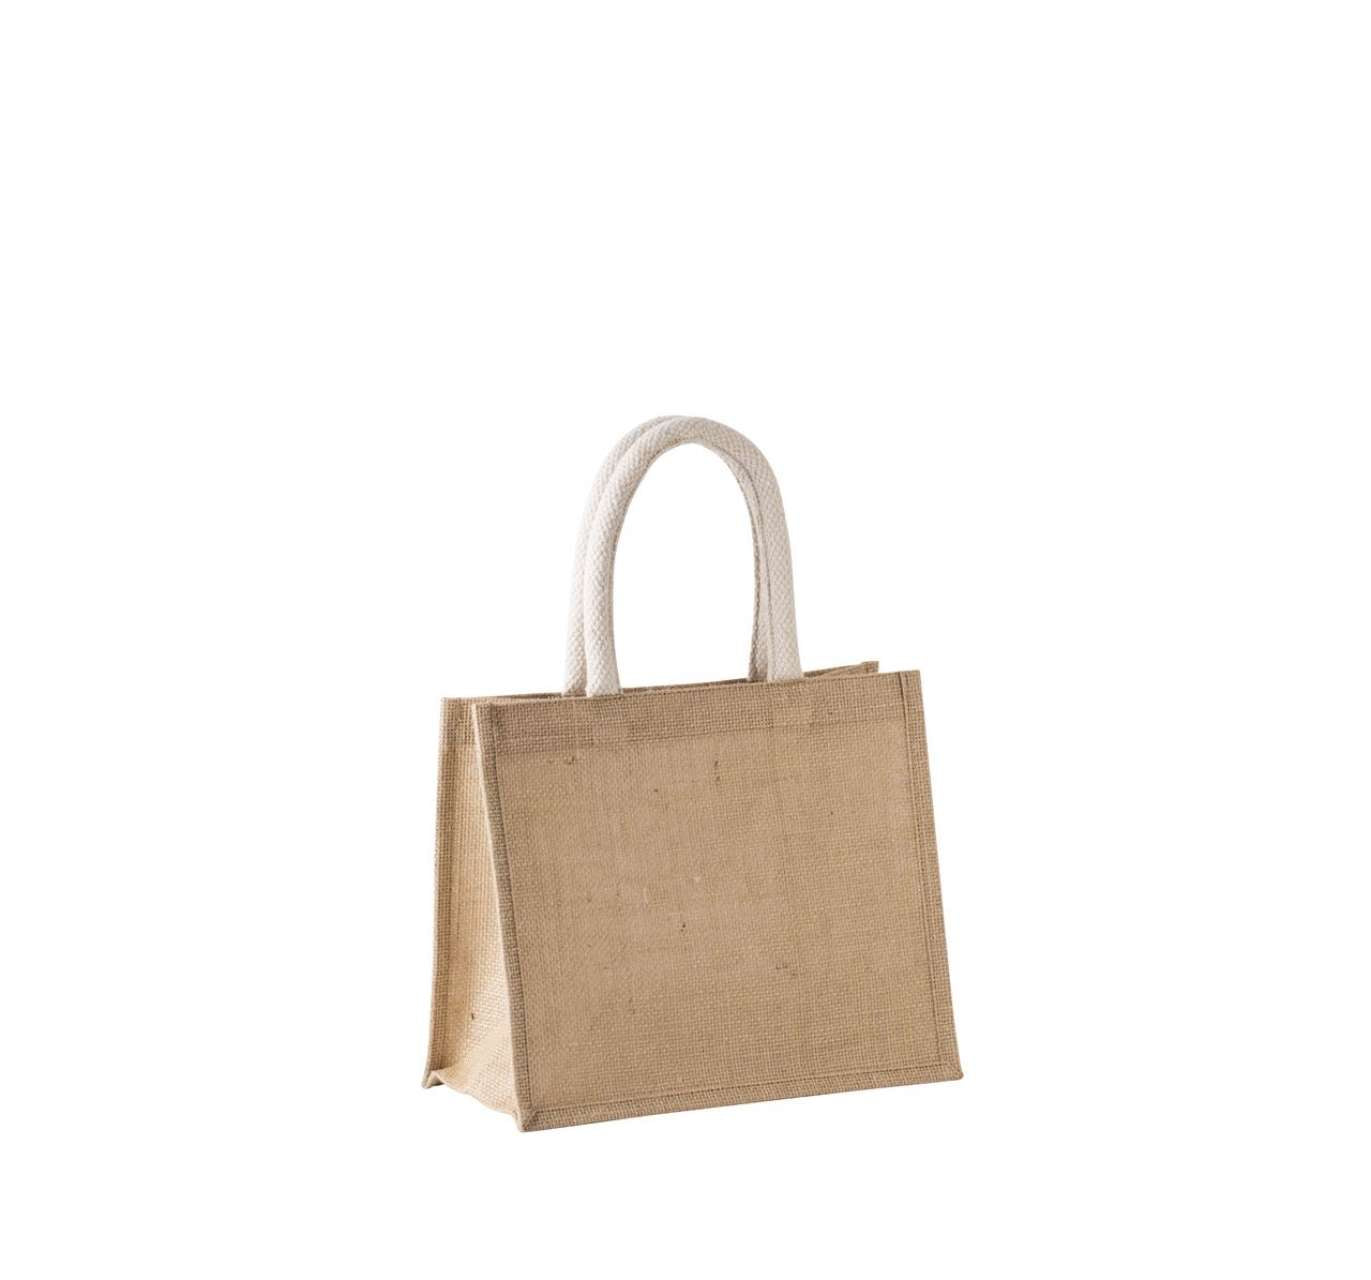 JUTE CANVAS TOTE SHOPPING BAG - MEDIUM